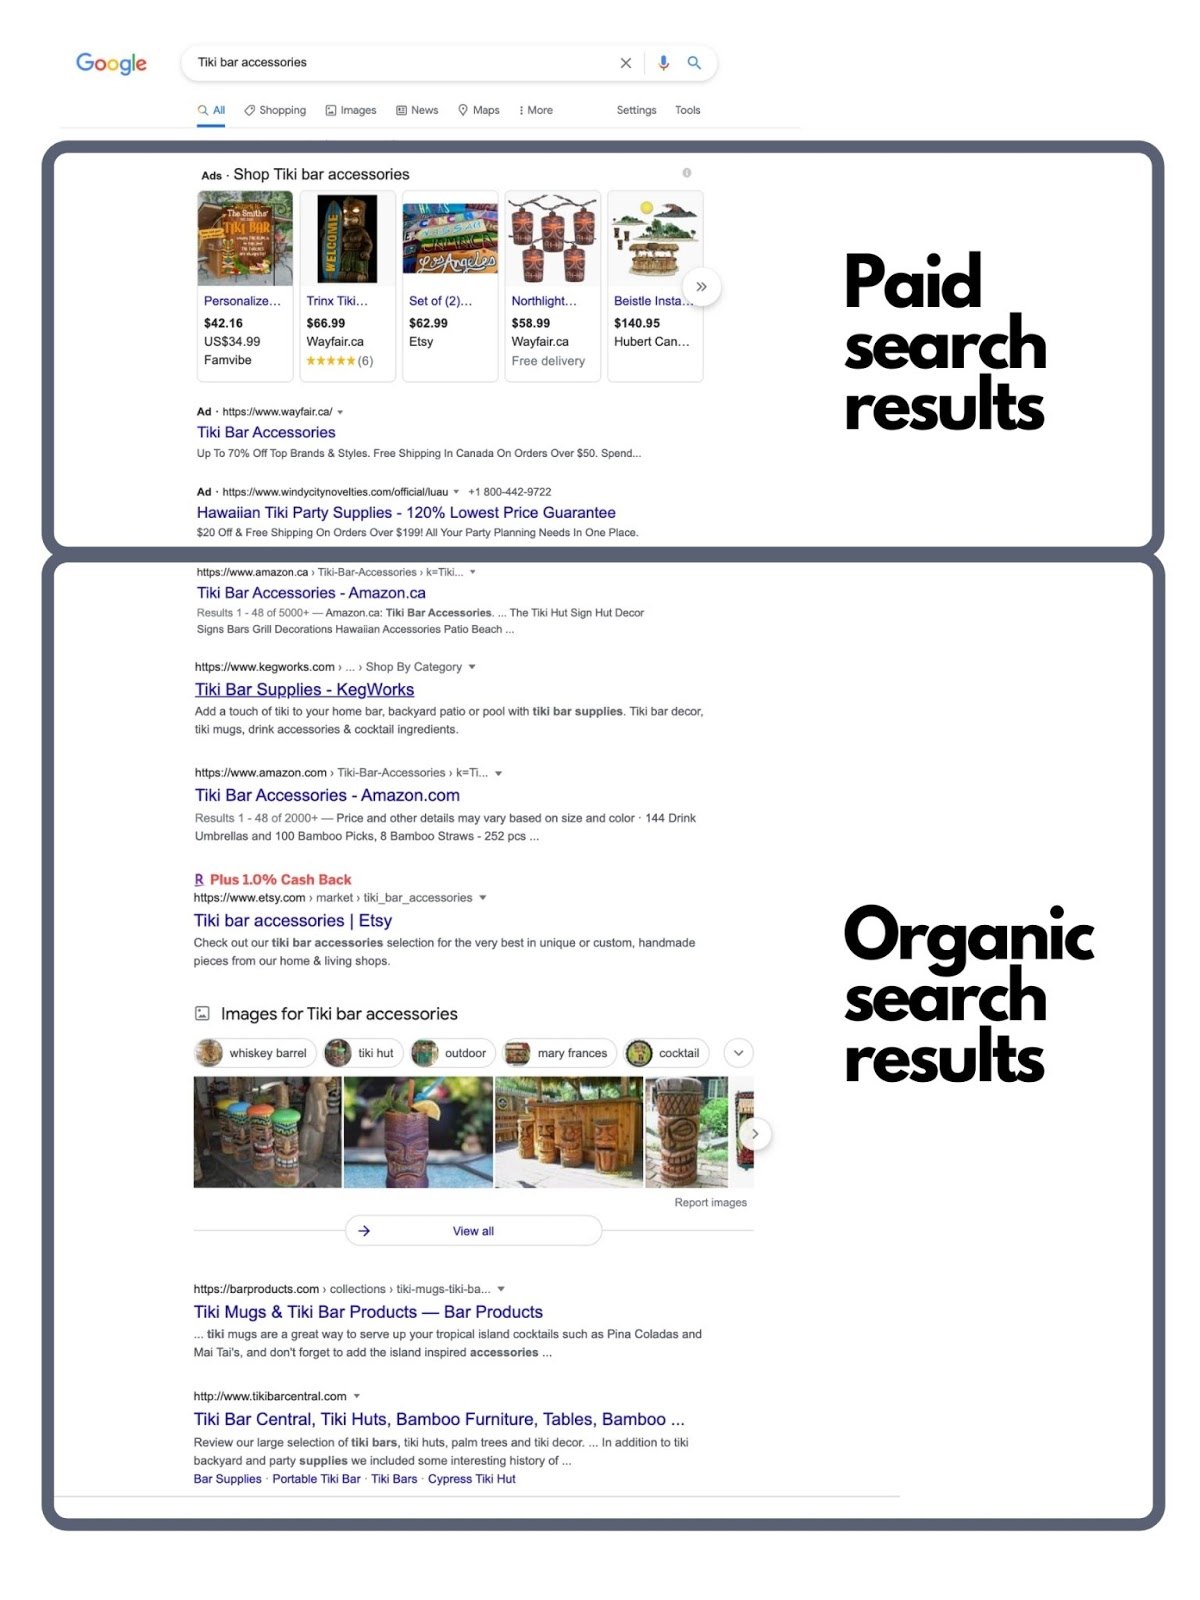 Organic traffic comes from the organic search results (under paid ads)